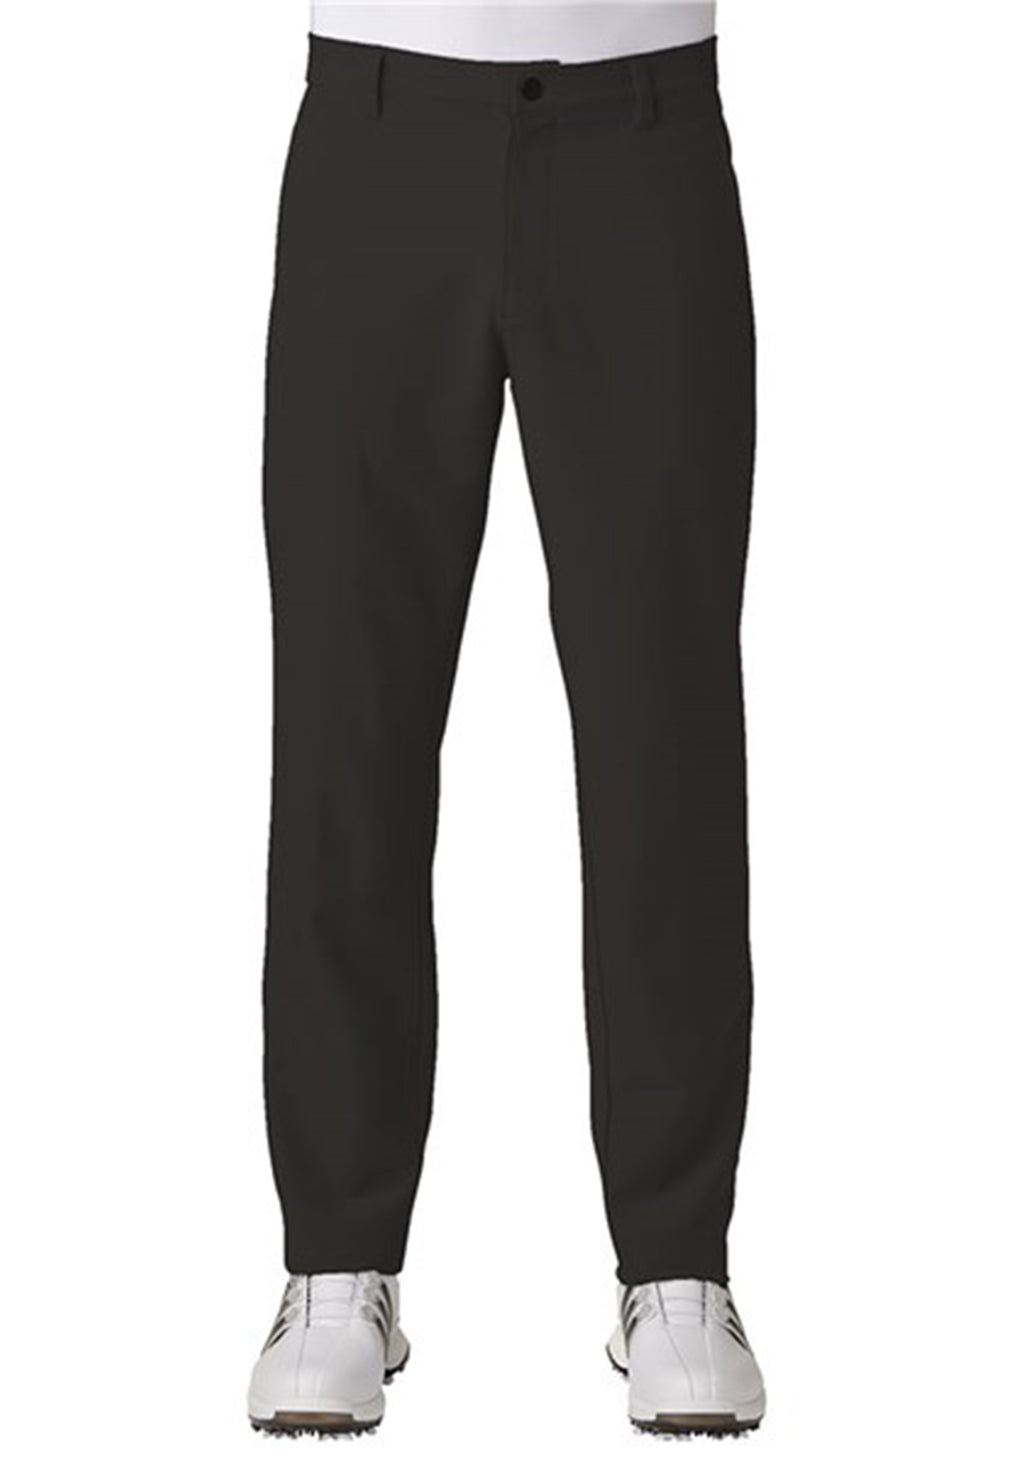 ADIDAS MENS ULTIMATE PRIME HEATHER TROUSER 34 INCH CARBON <BR> BC2405